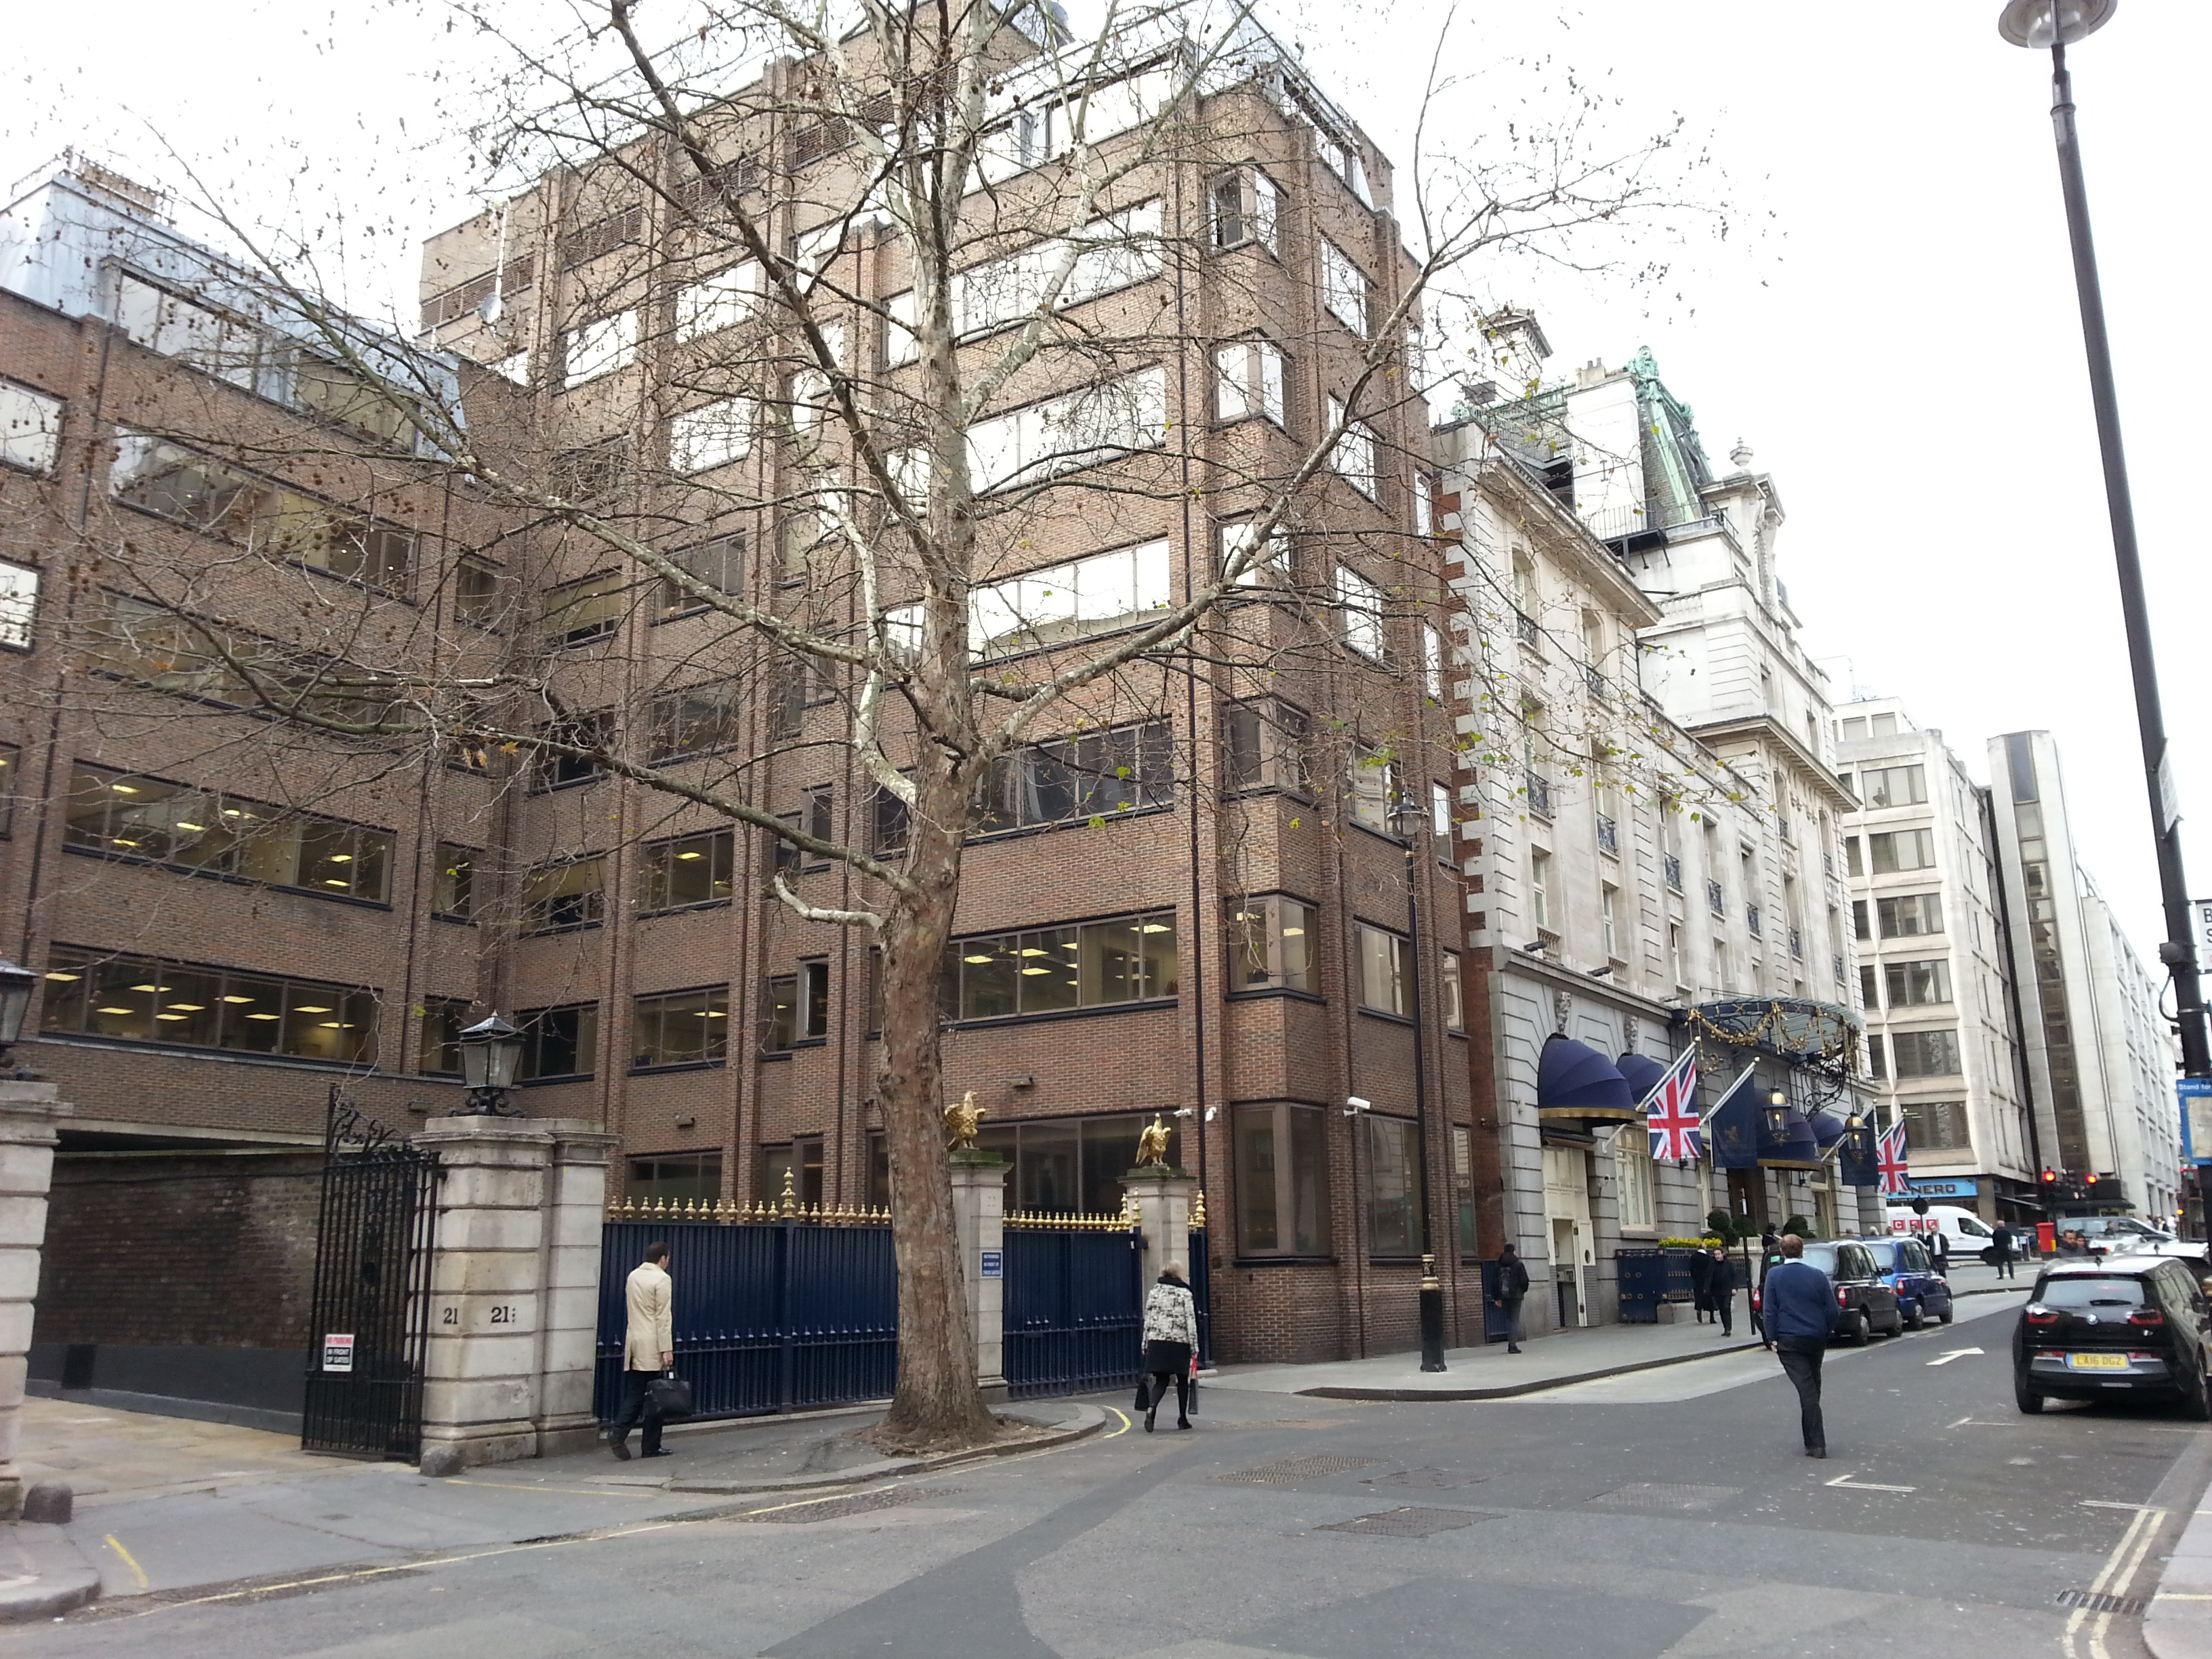 The site of the Marquis of Camden's house, Mayfair (22 Arlington Street)